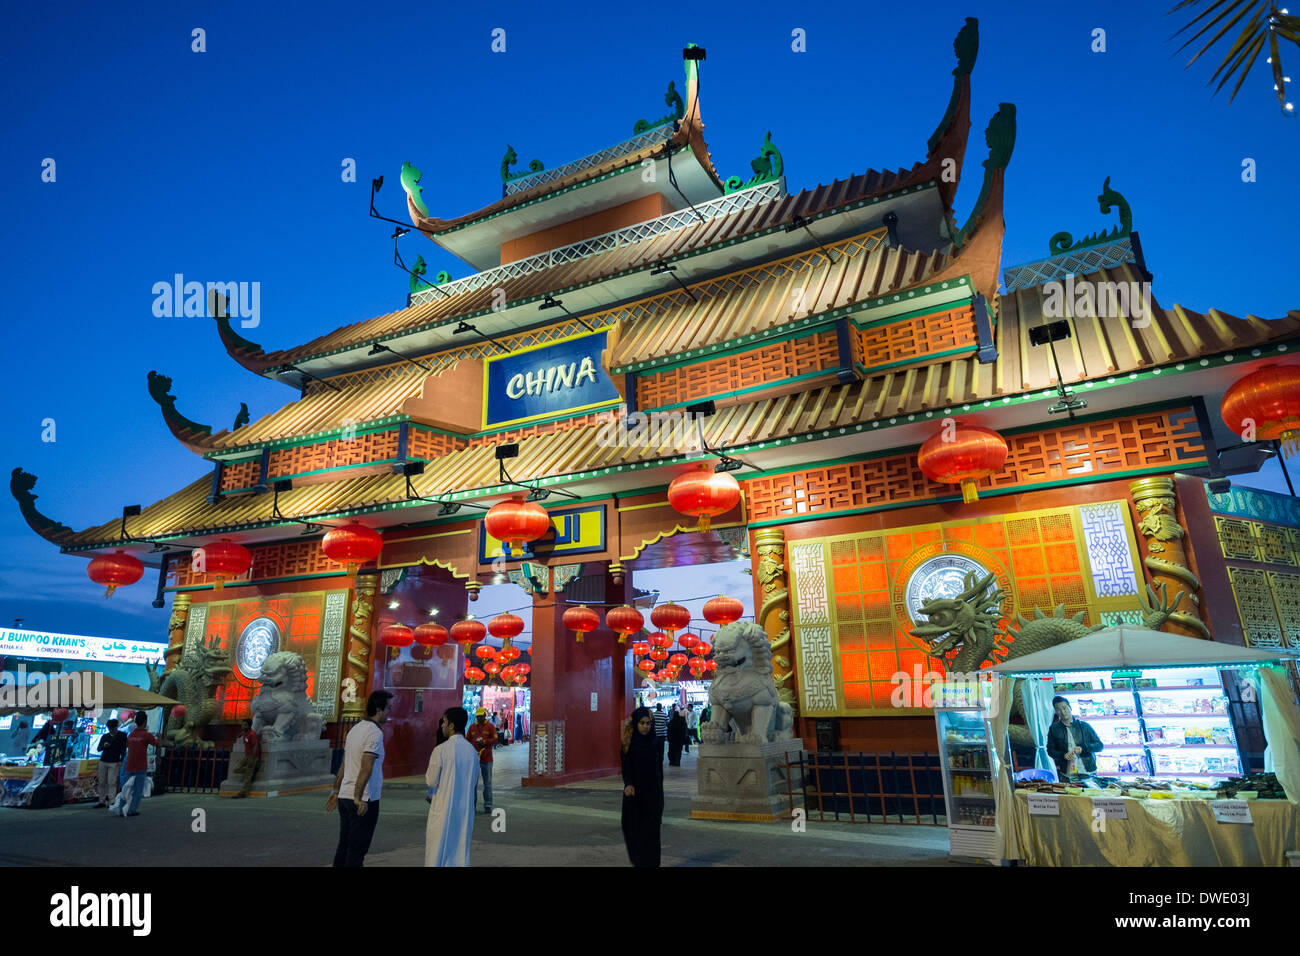 Ornate China Pavilion at Global Village tourist cultural attraction in Dubai United Arab Emirates Stock Photo